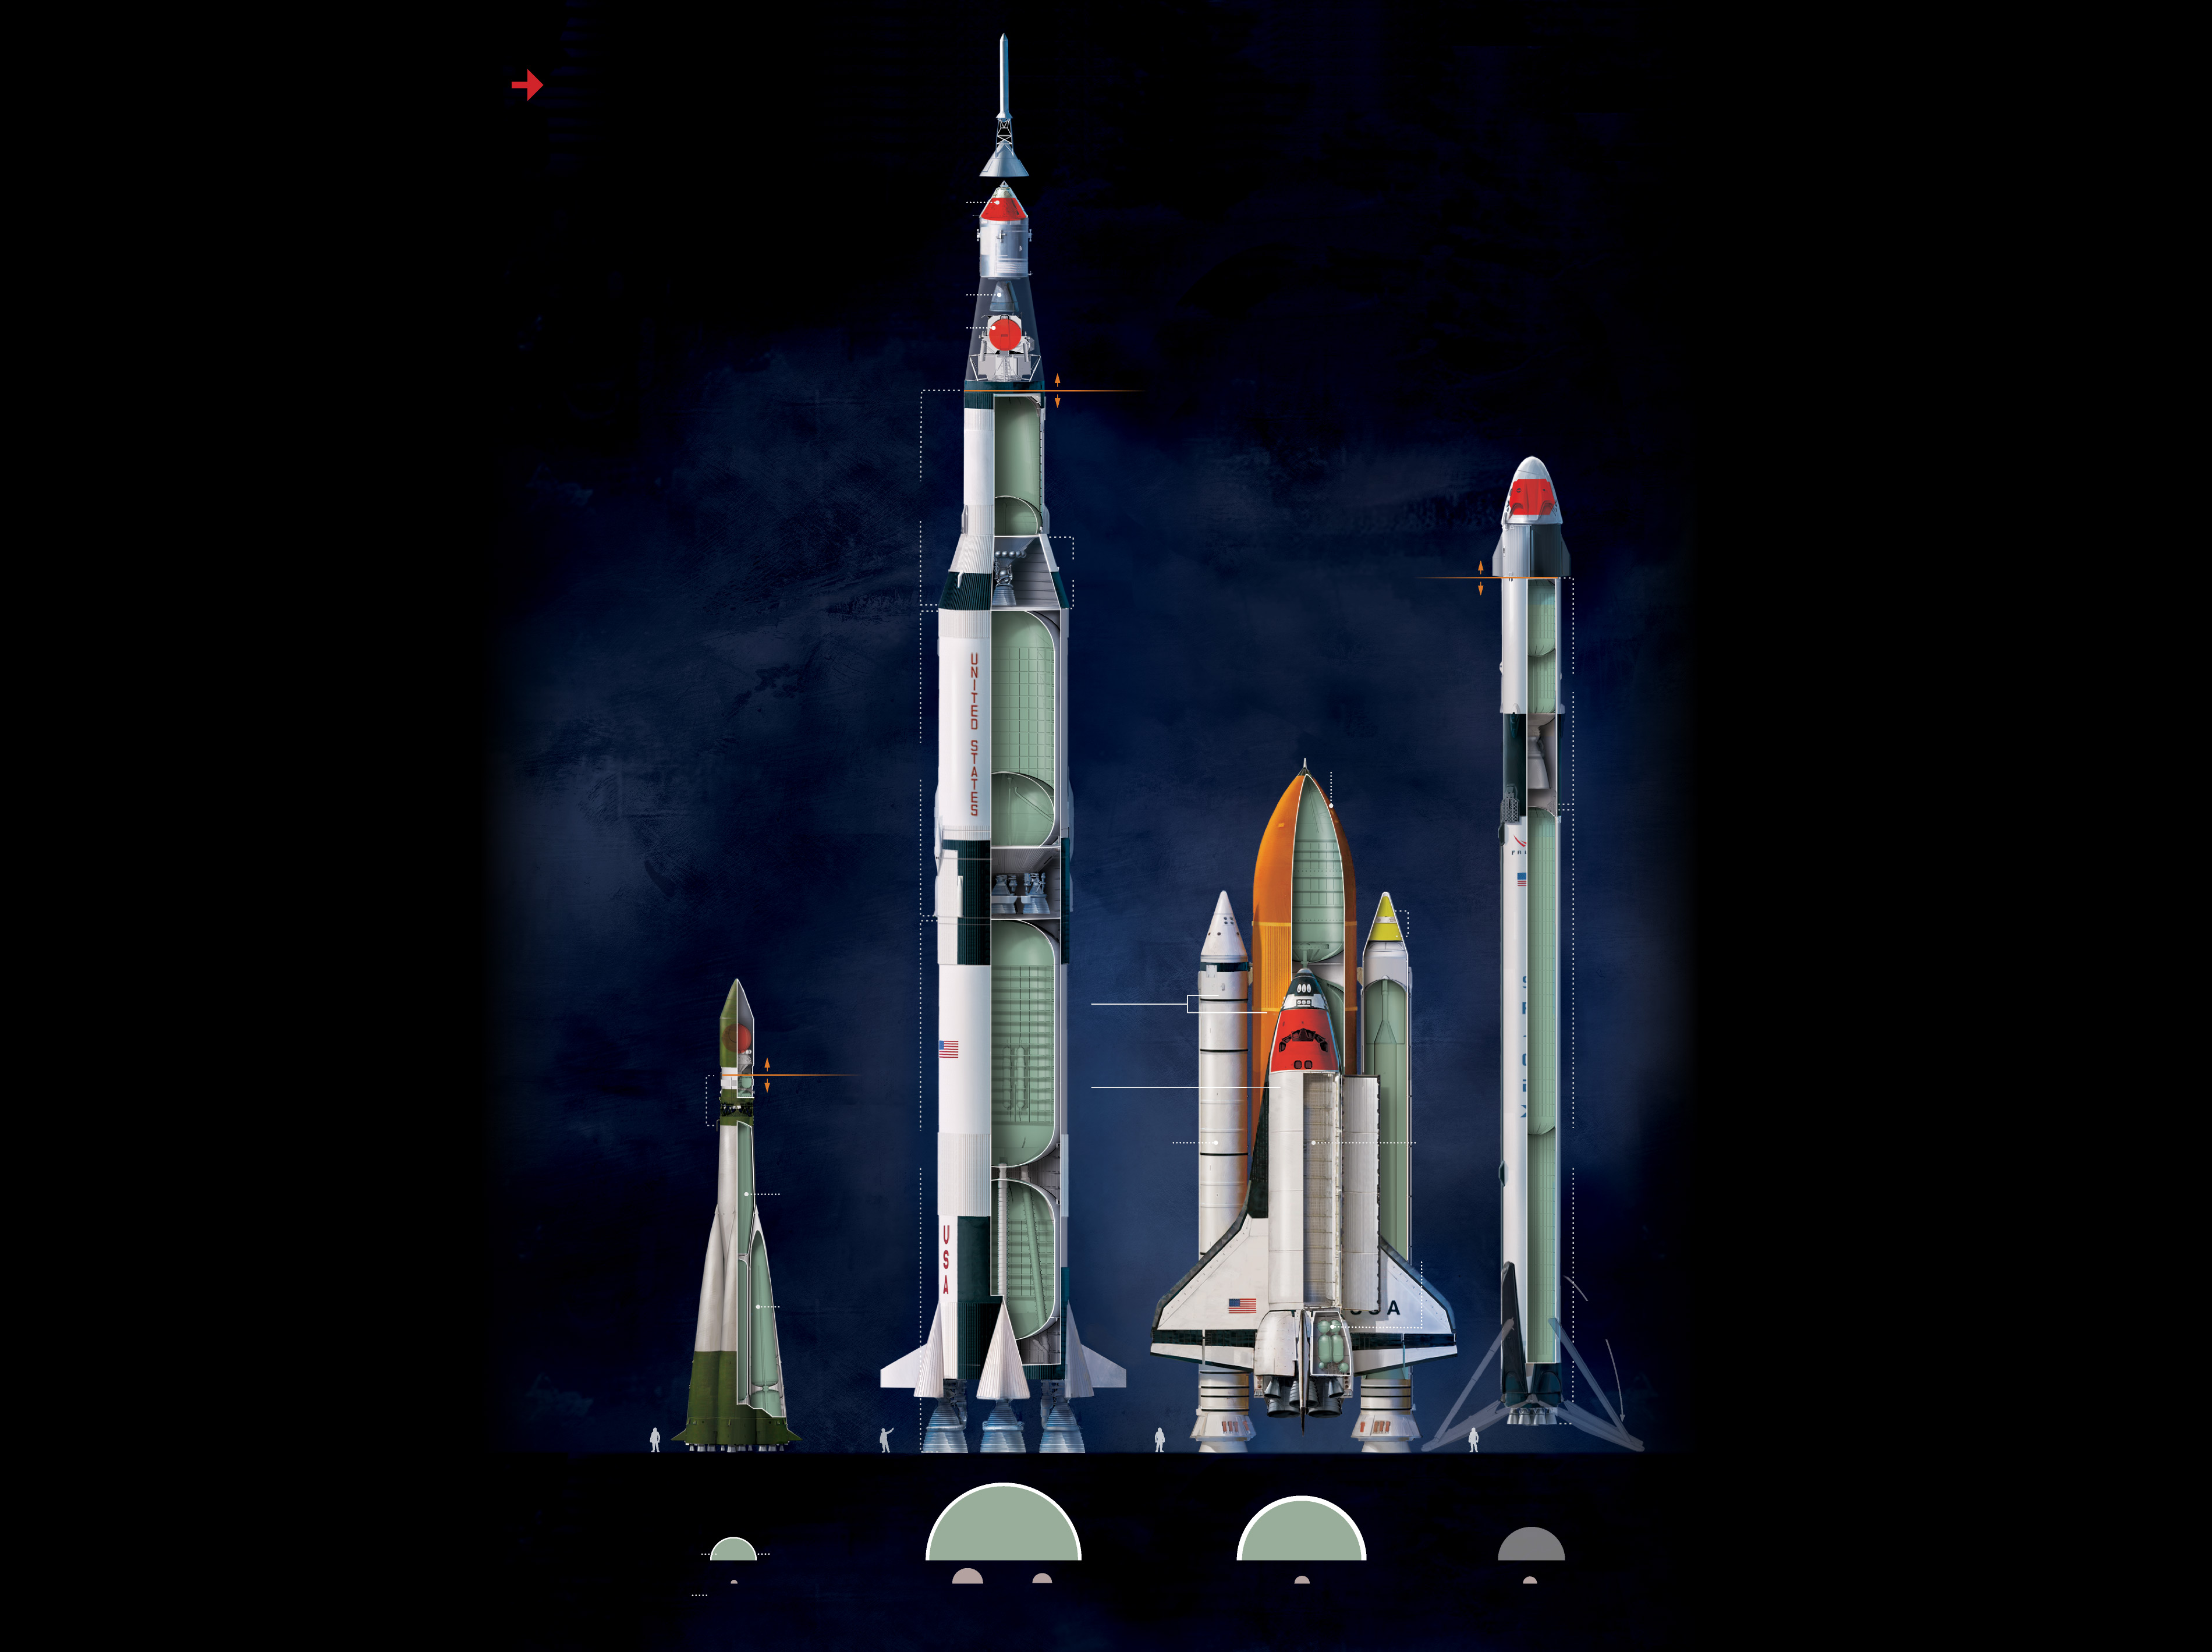 Apollo 11 moon landing 50th anniversary, we look to the ...